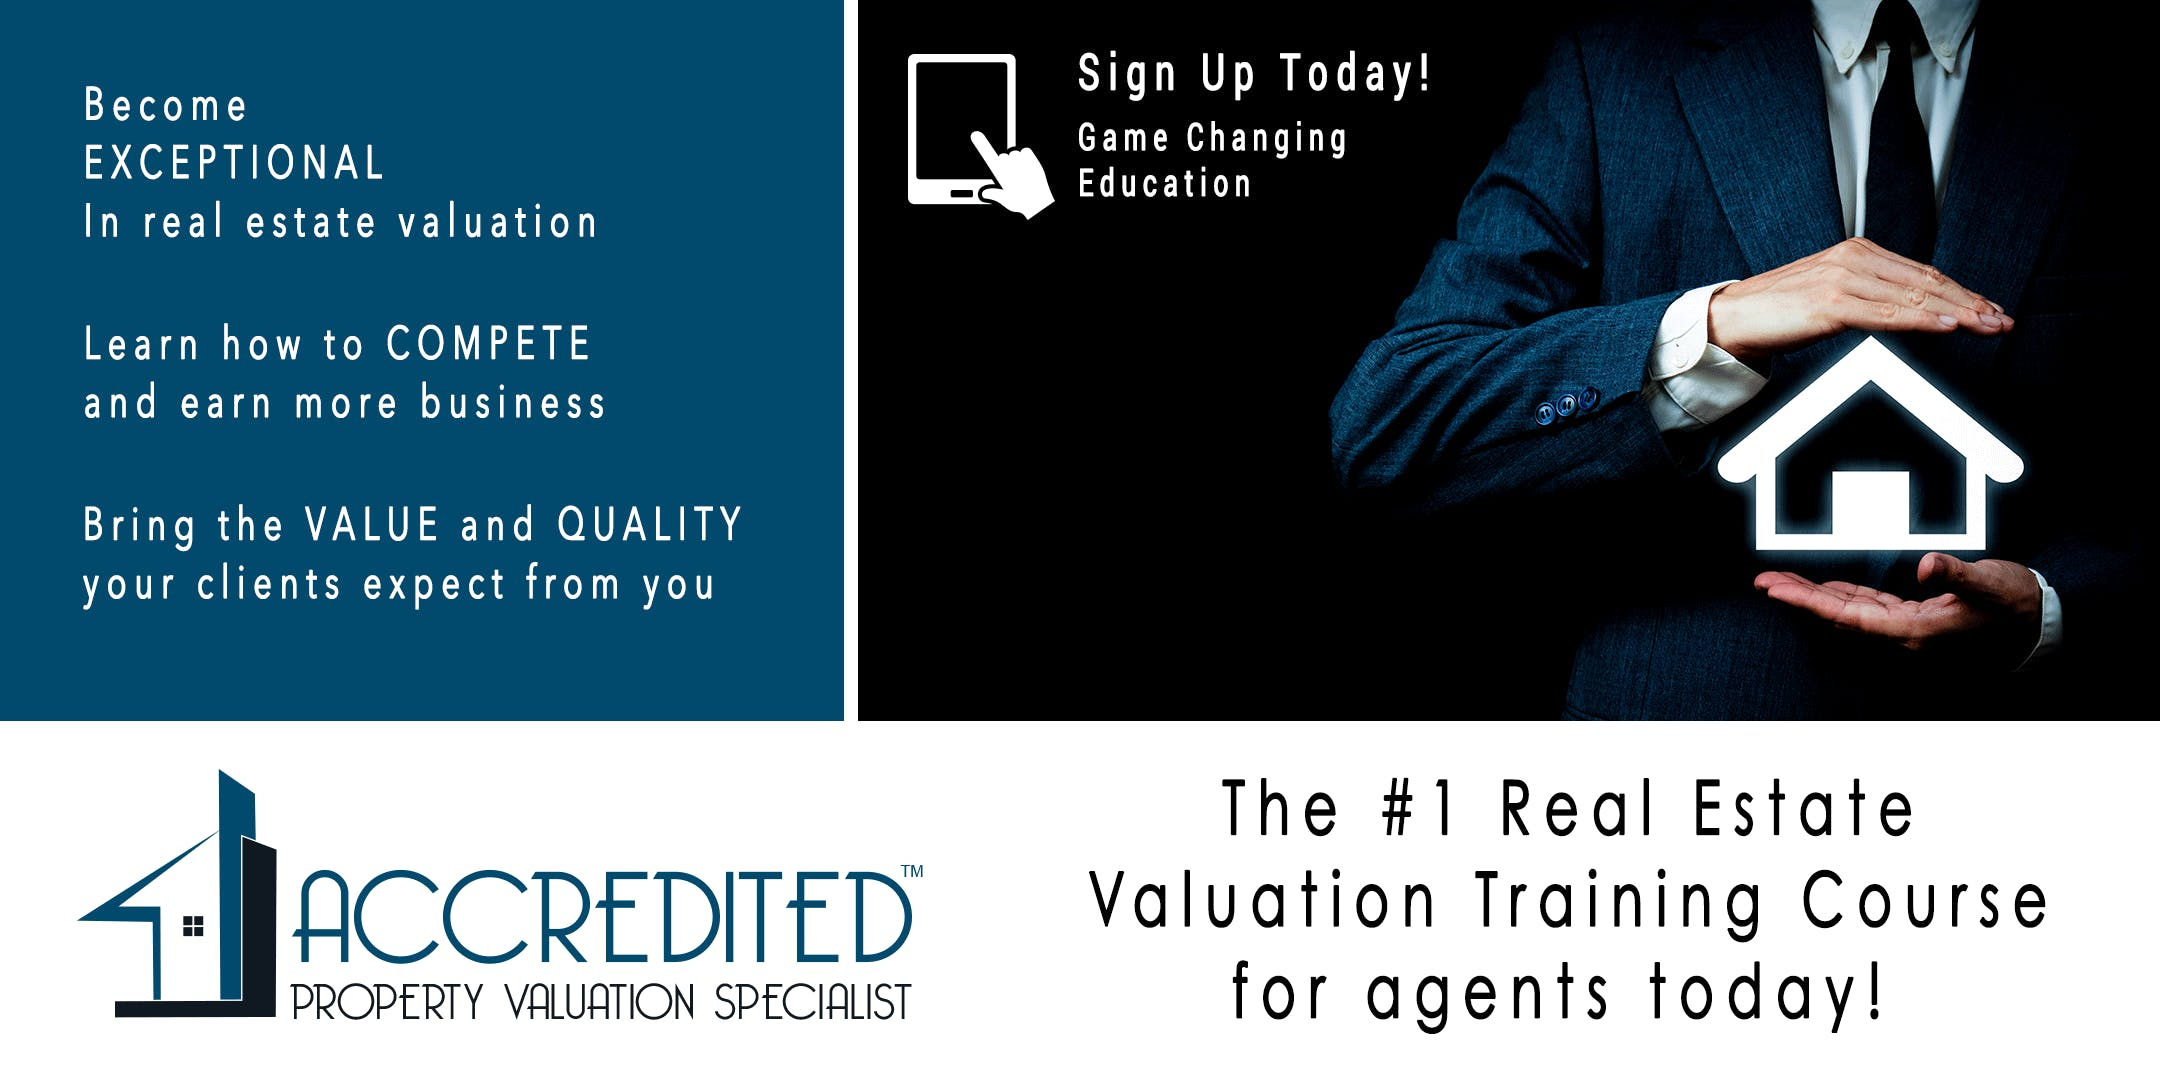 Accredited Property Valuation Specialist Trai